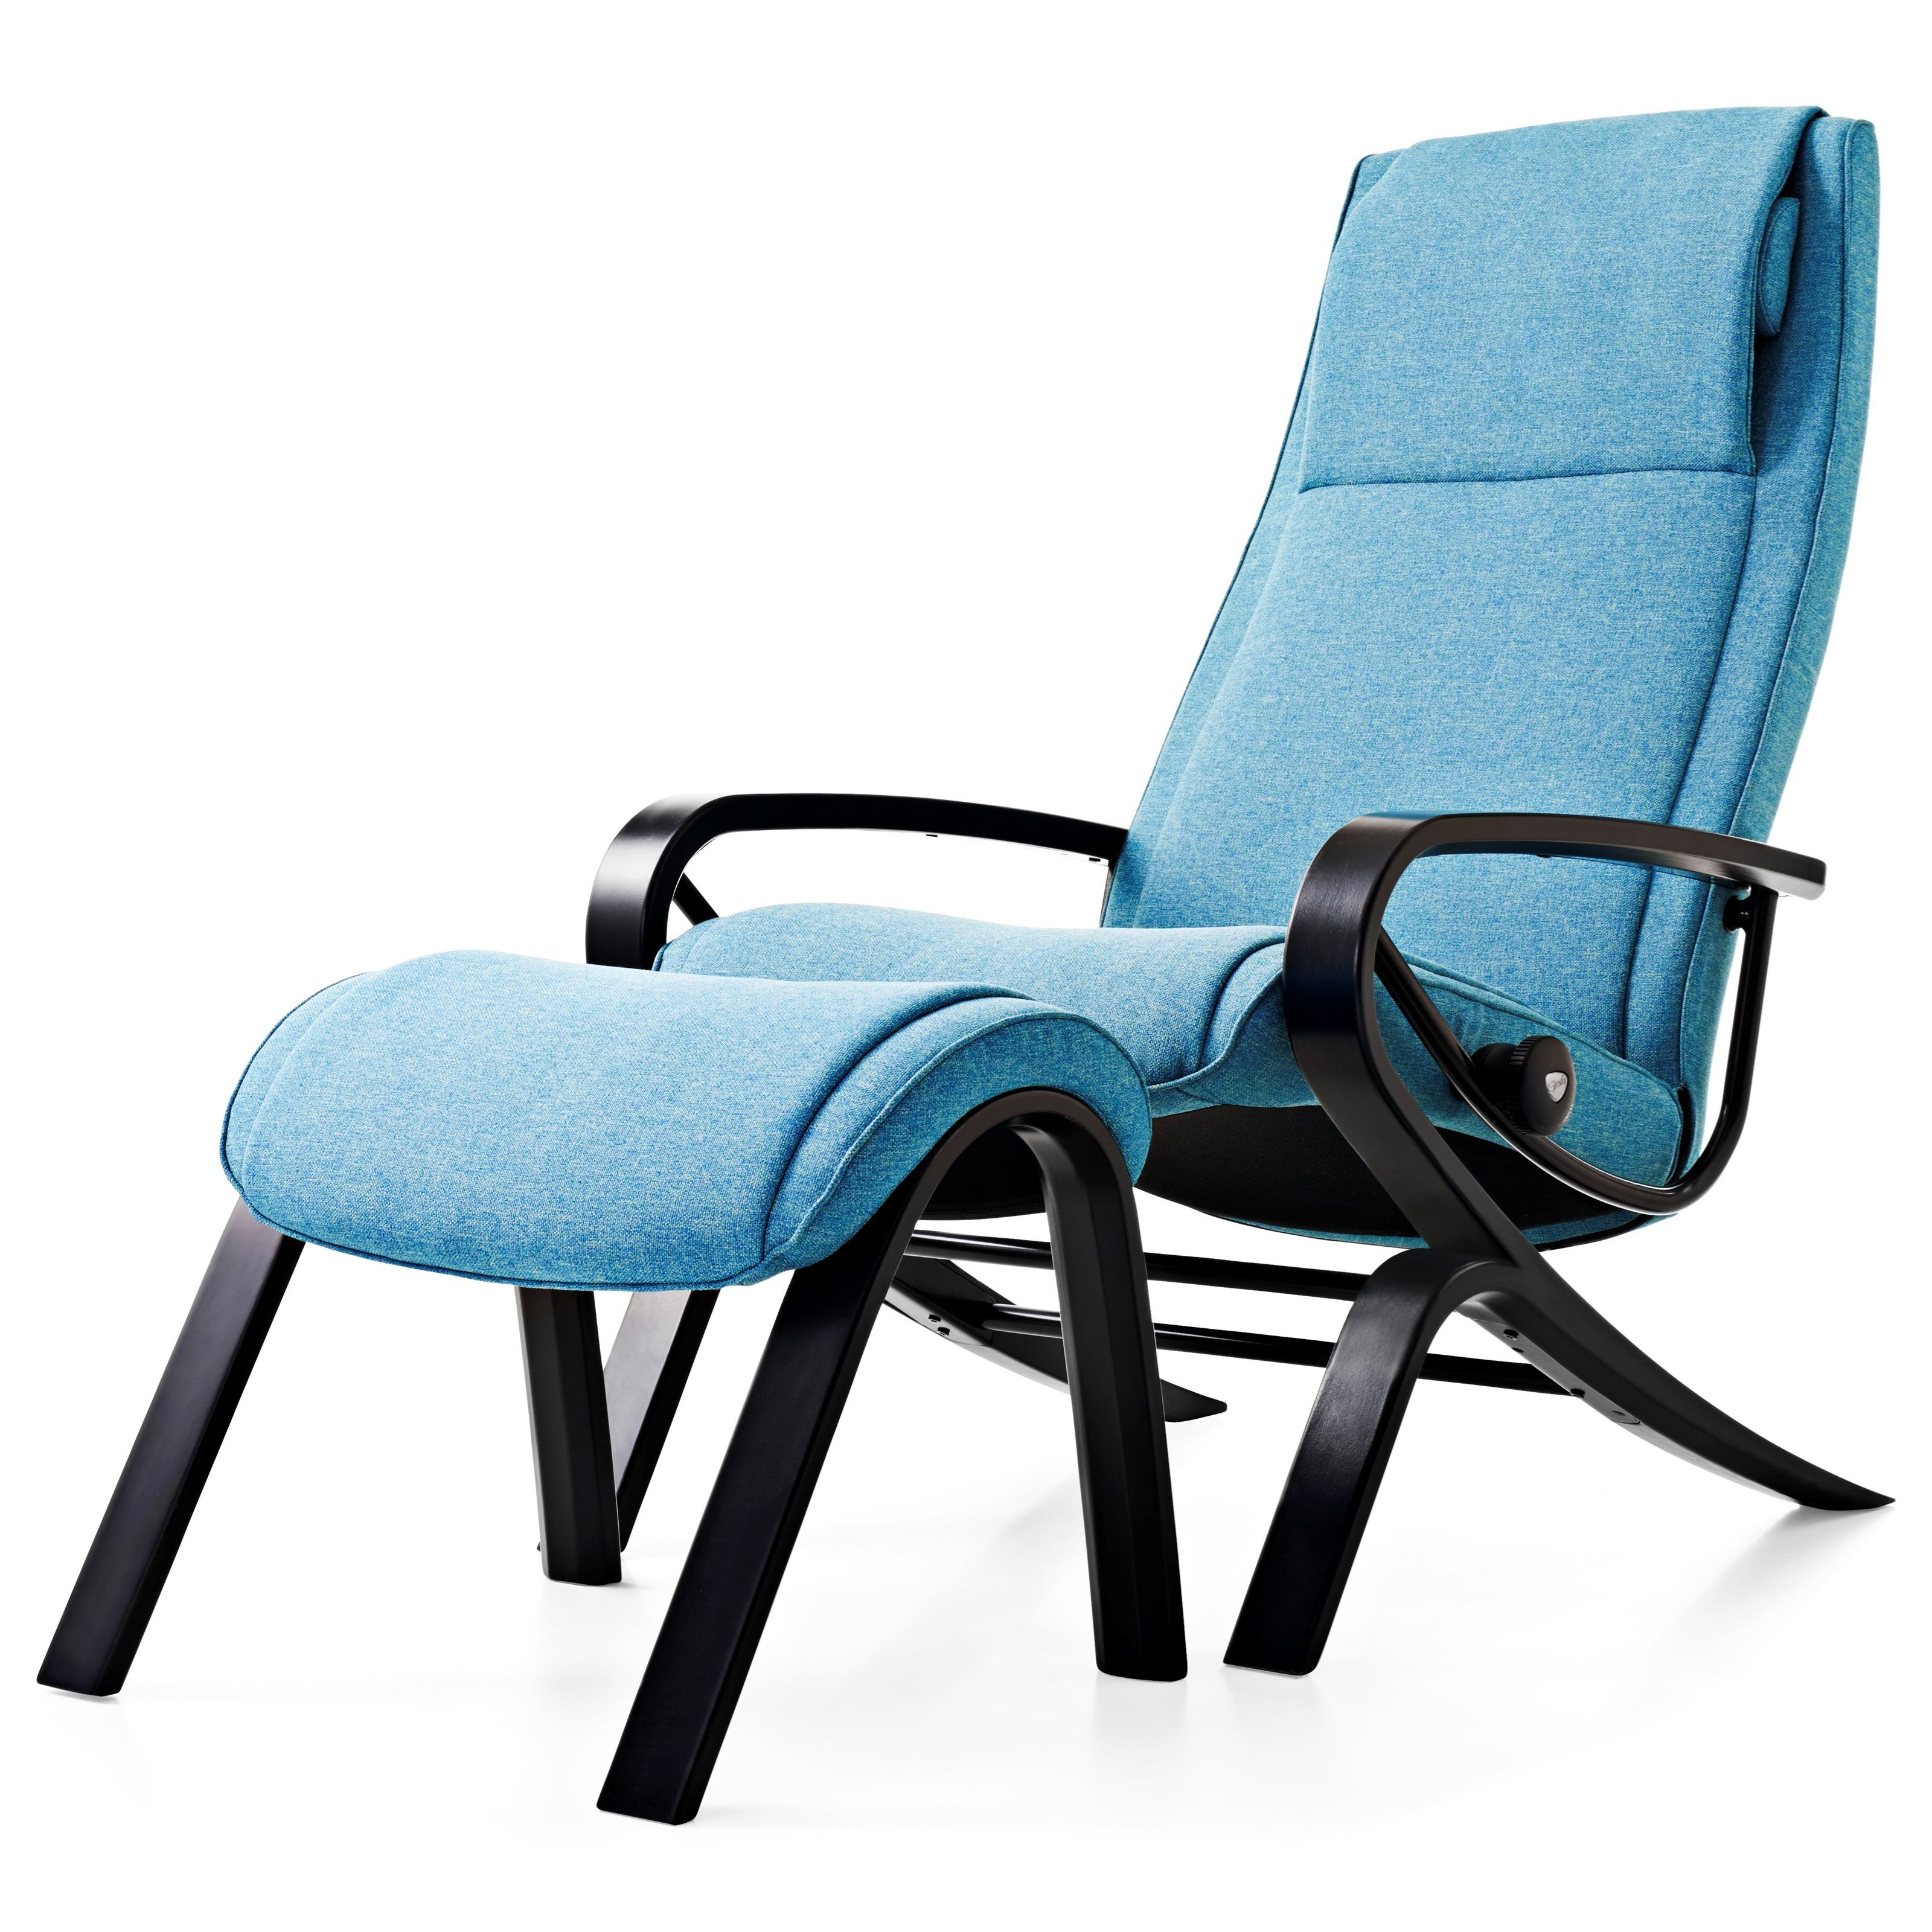 Stressless by Ekornes Stressless You James Reclining Chair and